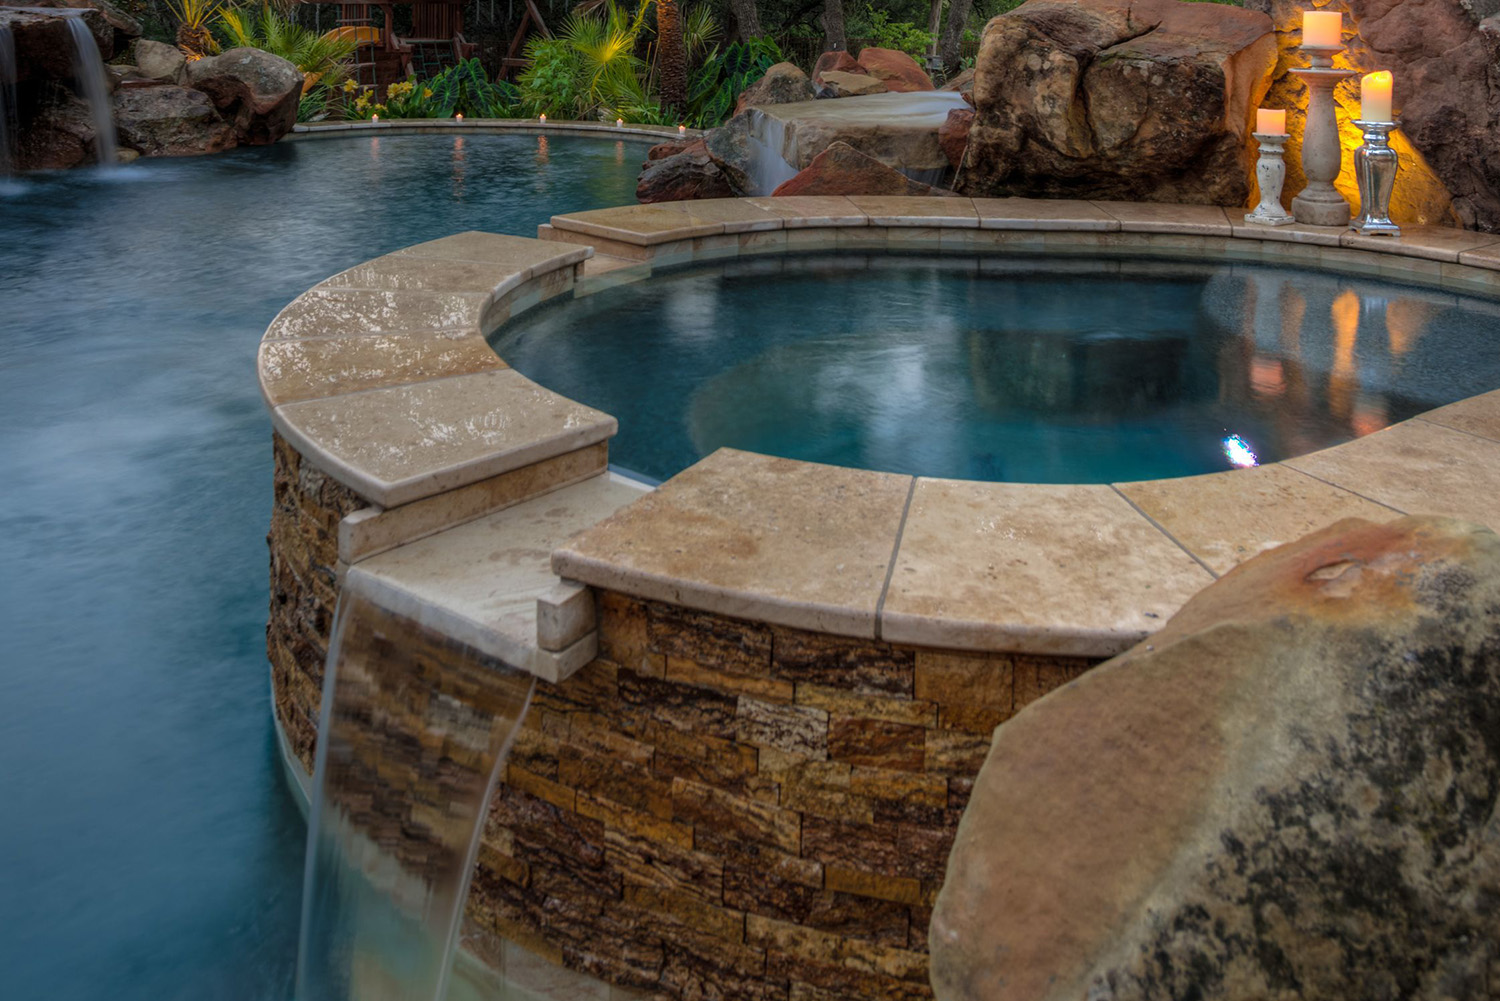 Pool with Water Spout and Column